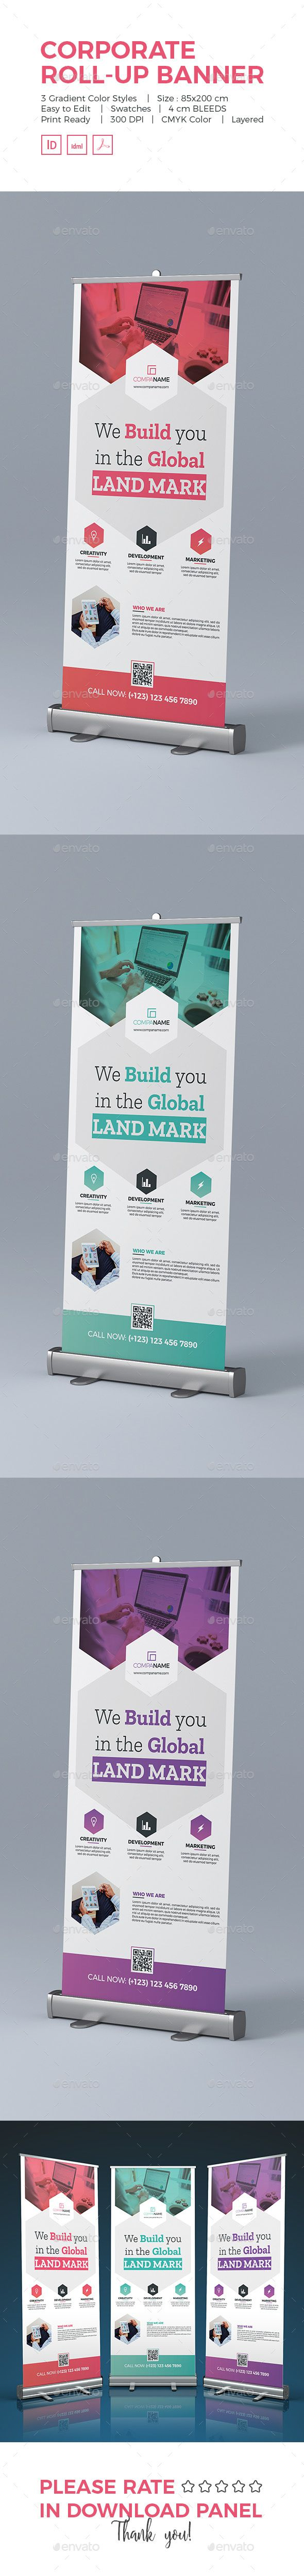 Corporate Roll-Up Banner - Signage Print Templates    #Signage  #SignageTemplates #Signage-Templates #graphicriver  #Design #buisness #printtemplates #color #print-templates #Corporate-Roll-Up-Banner  #Corporate #Roll-Up #Banner #CorporateRoll-UpBanner